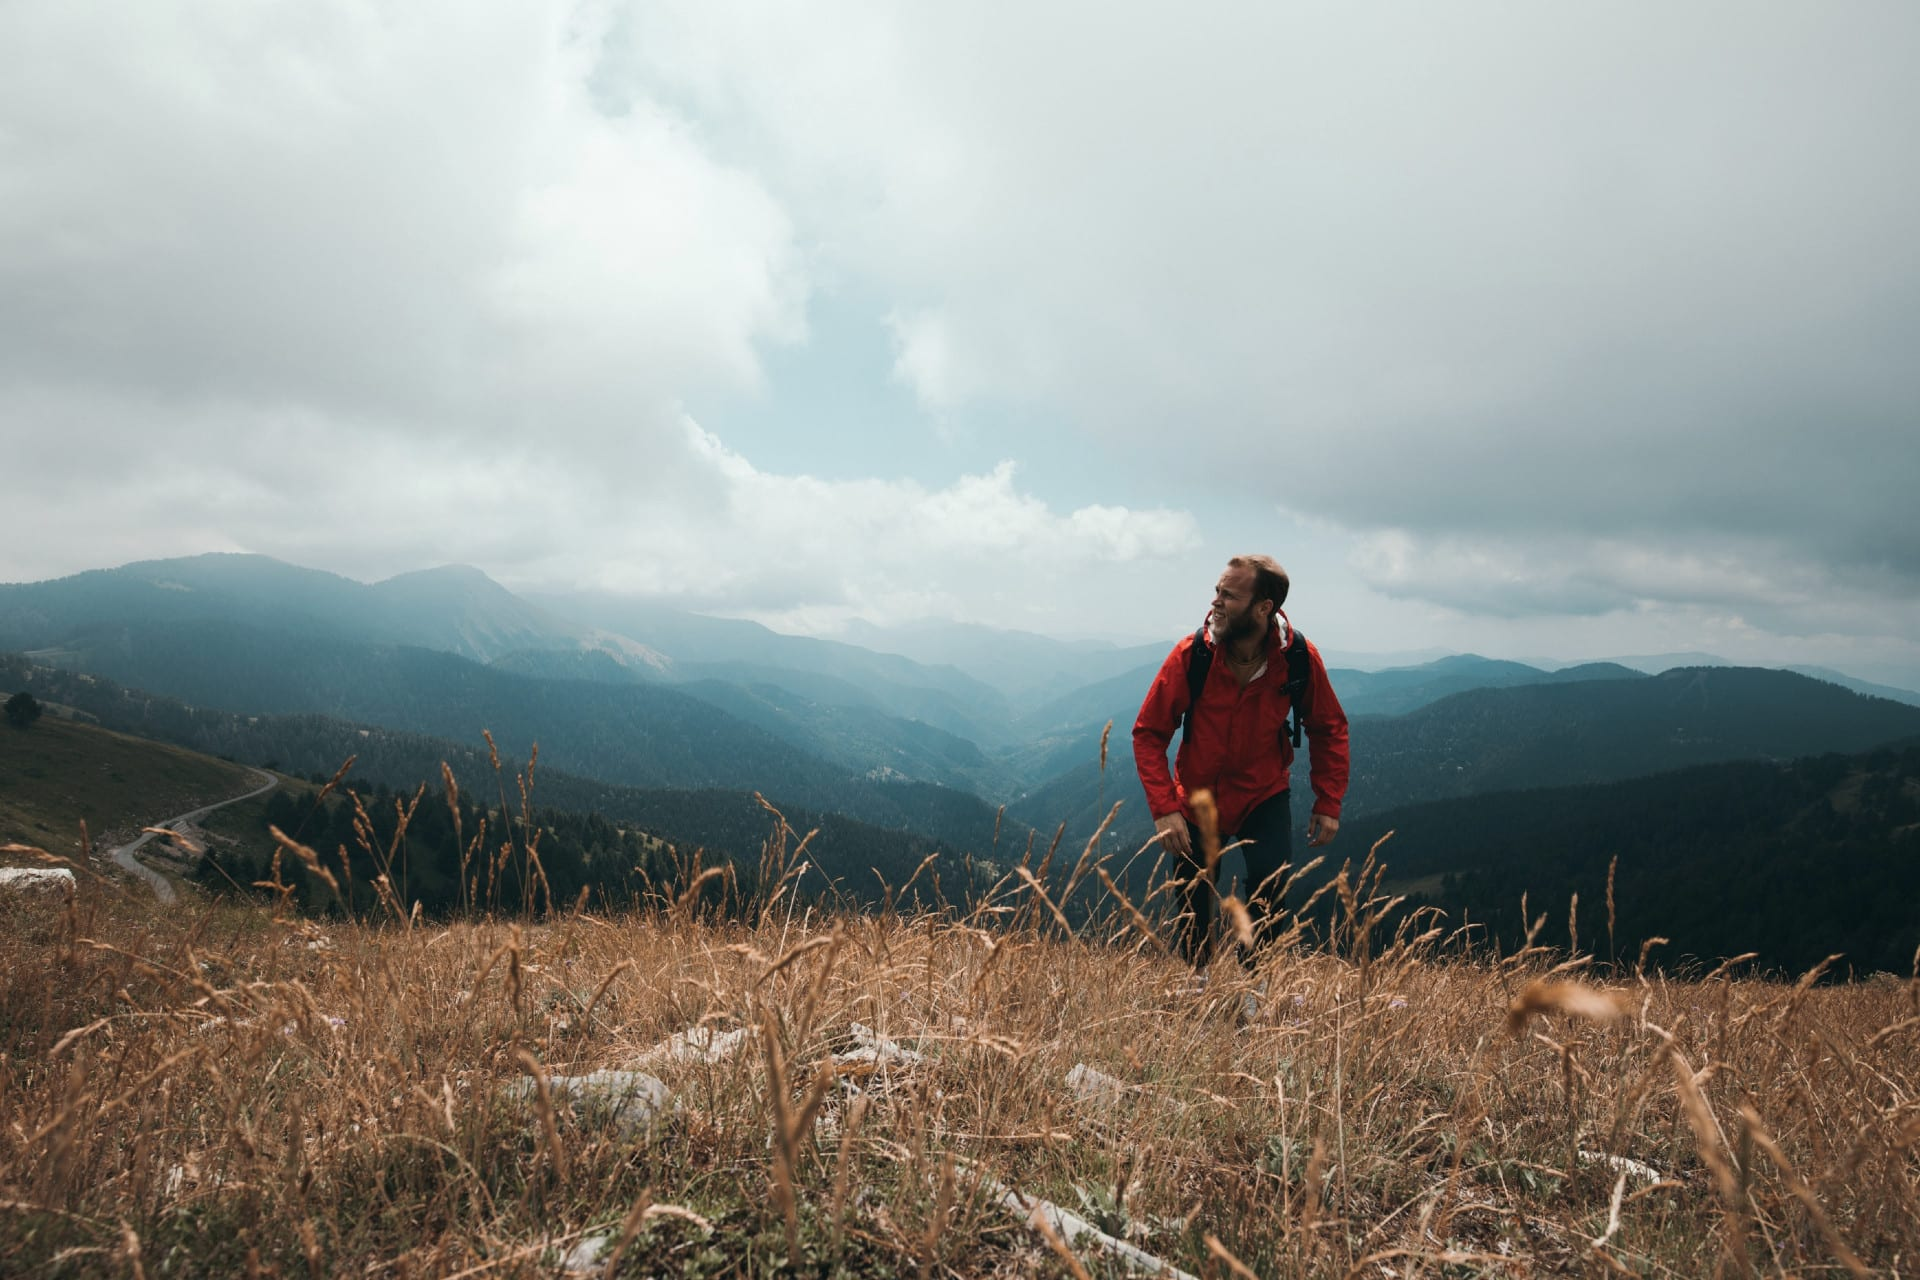 A man in a red coat, hiking up a mountain range.